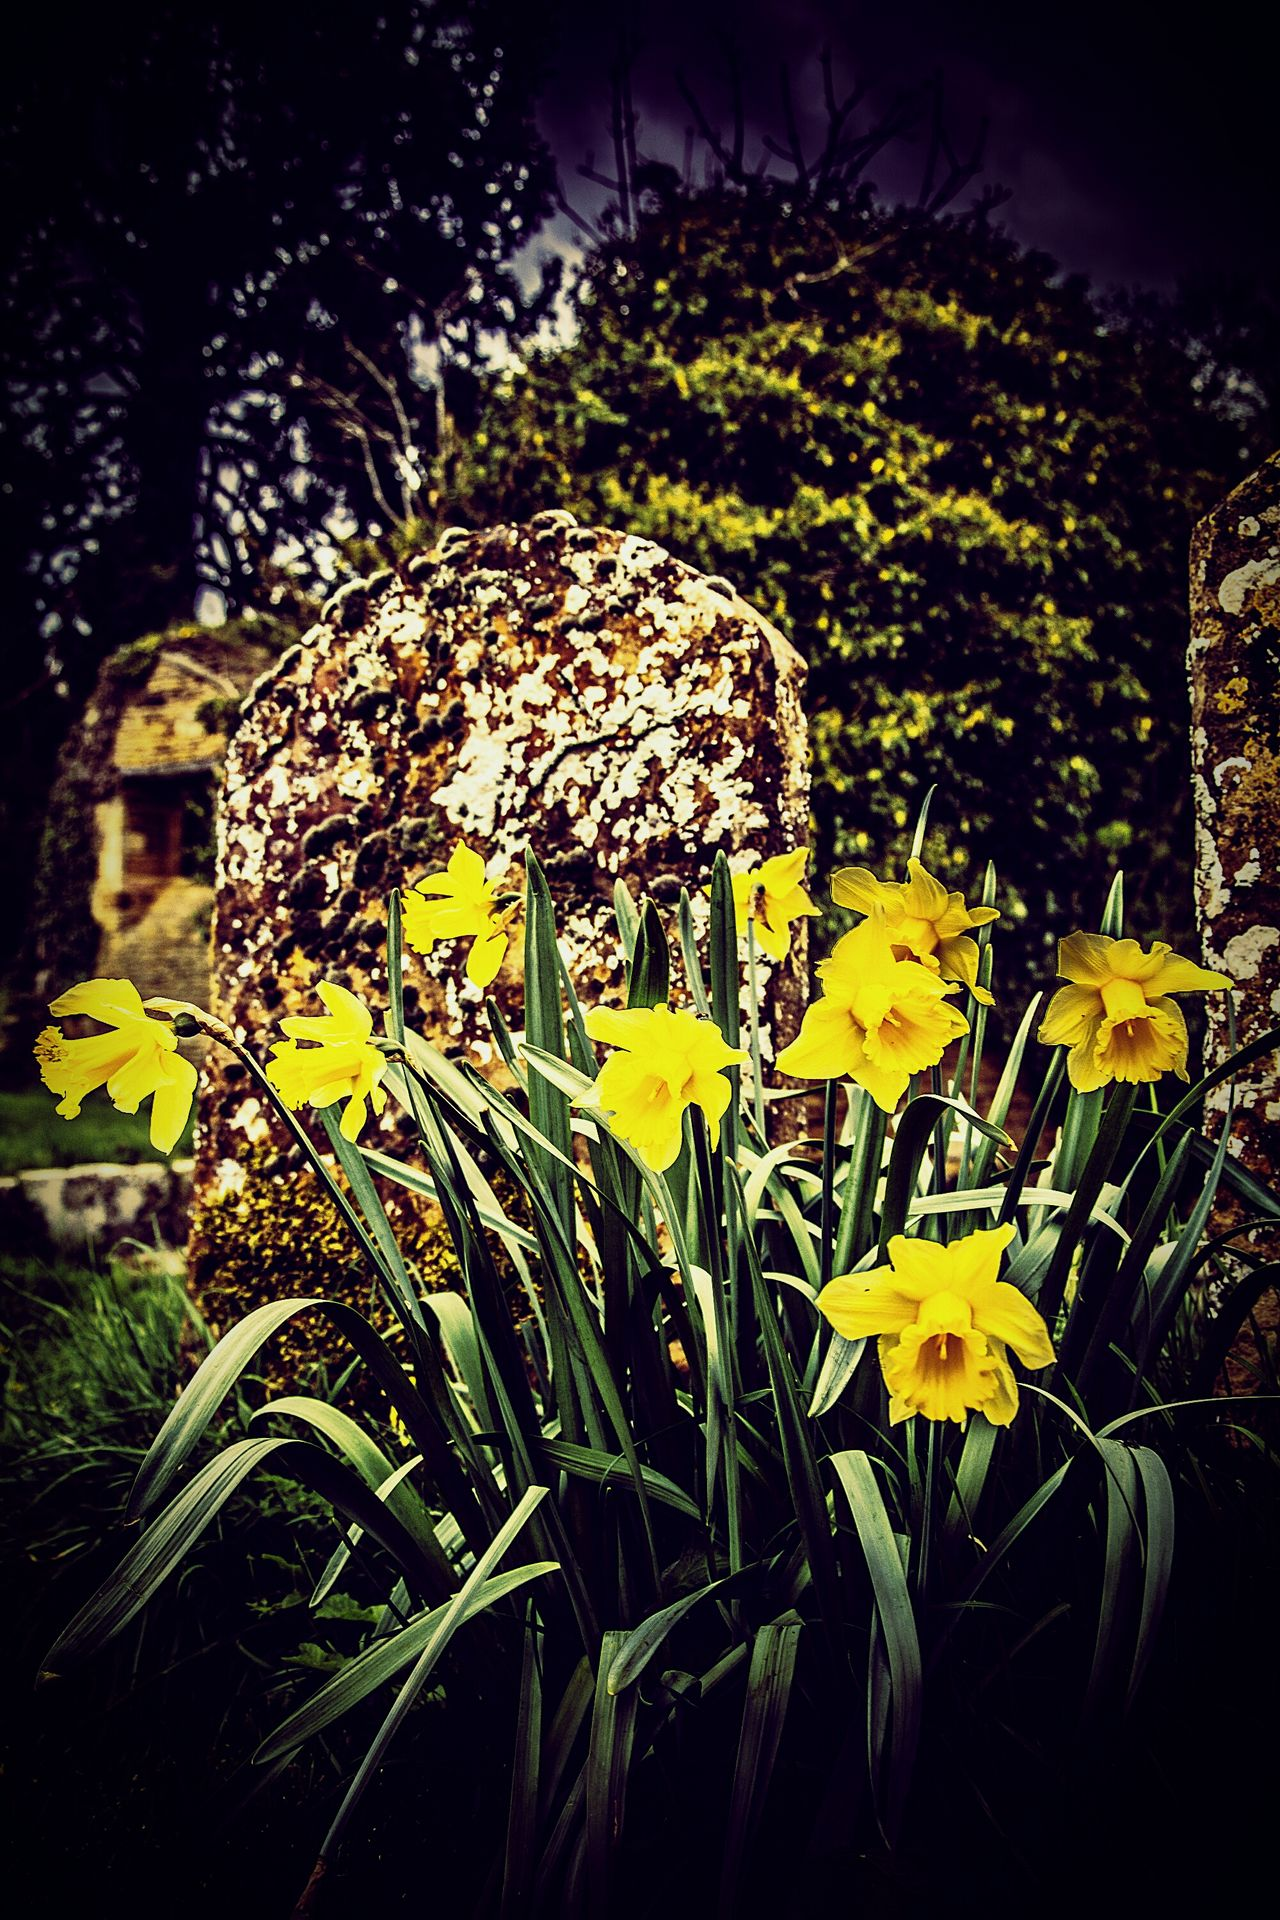 Daffodils in the graveyard of St John's Old Church, Boughton, Northamptonshire. Daffodils Daffodil Graveyard Church Ruins Boughton Northamptonshire Secret Garden